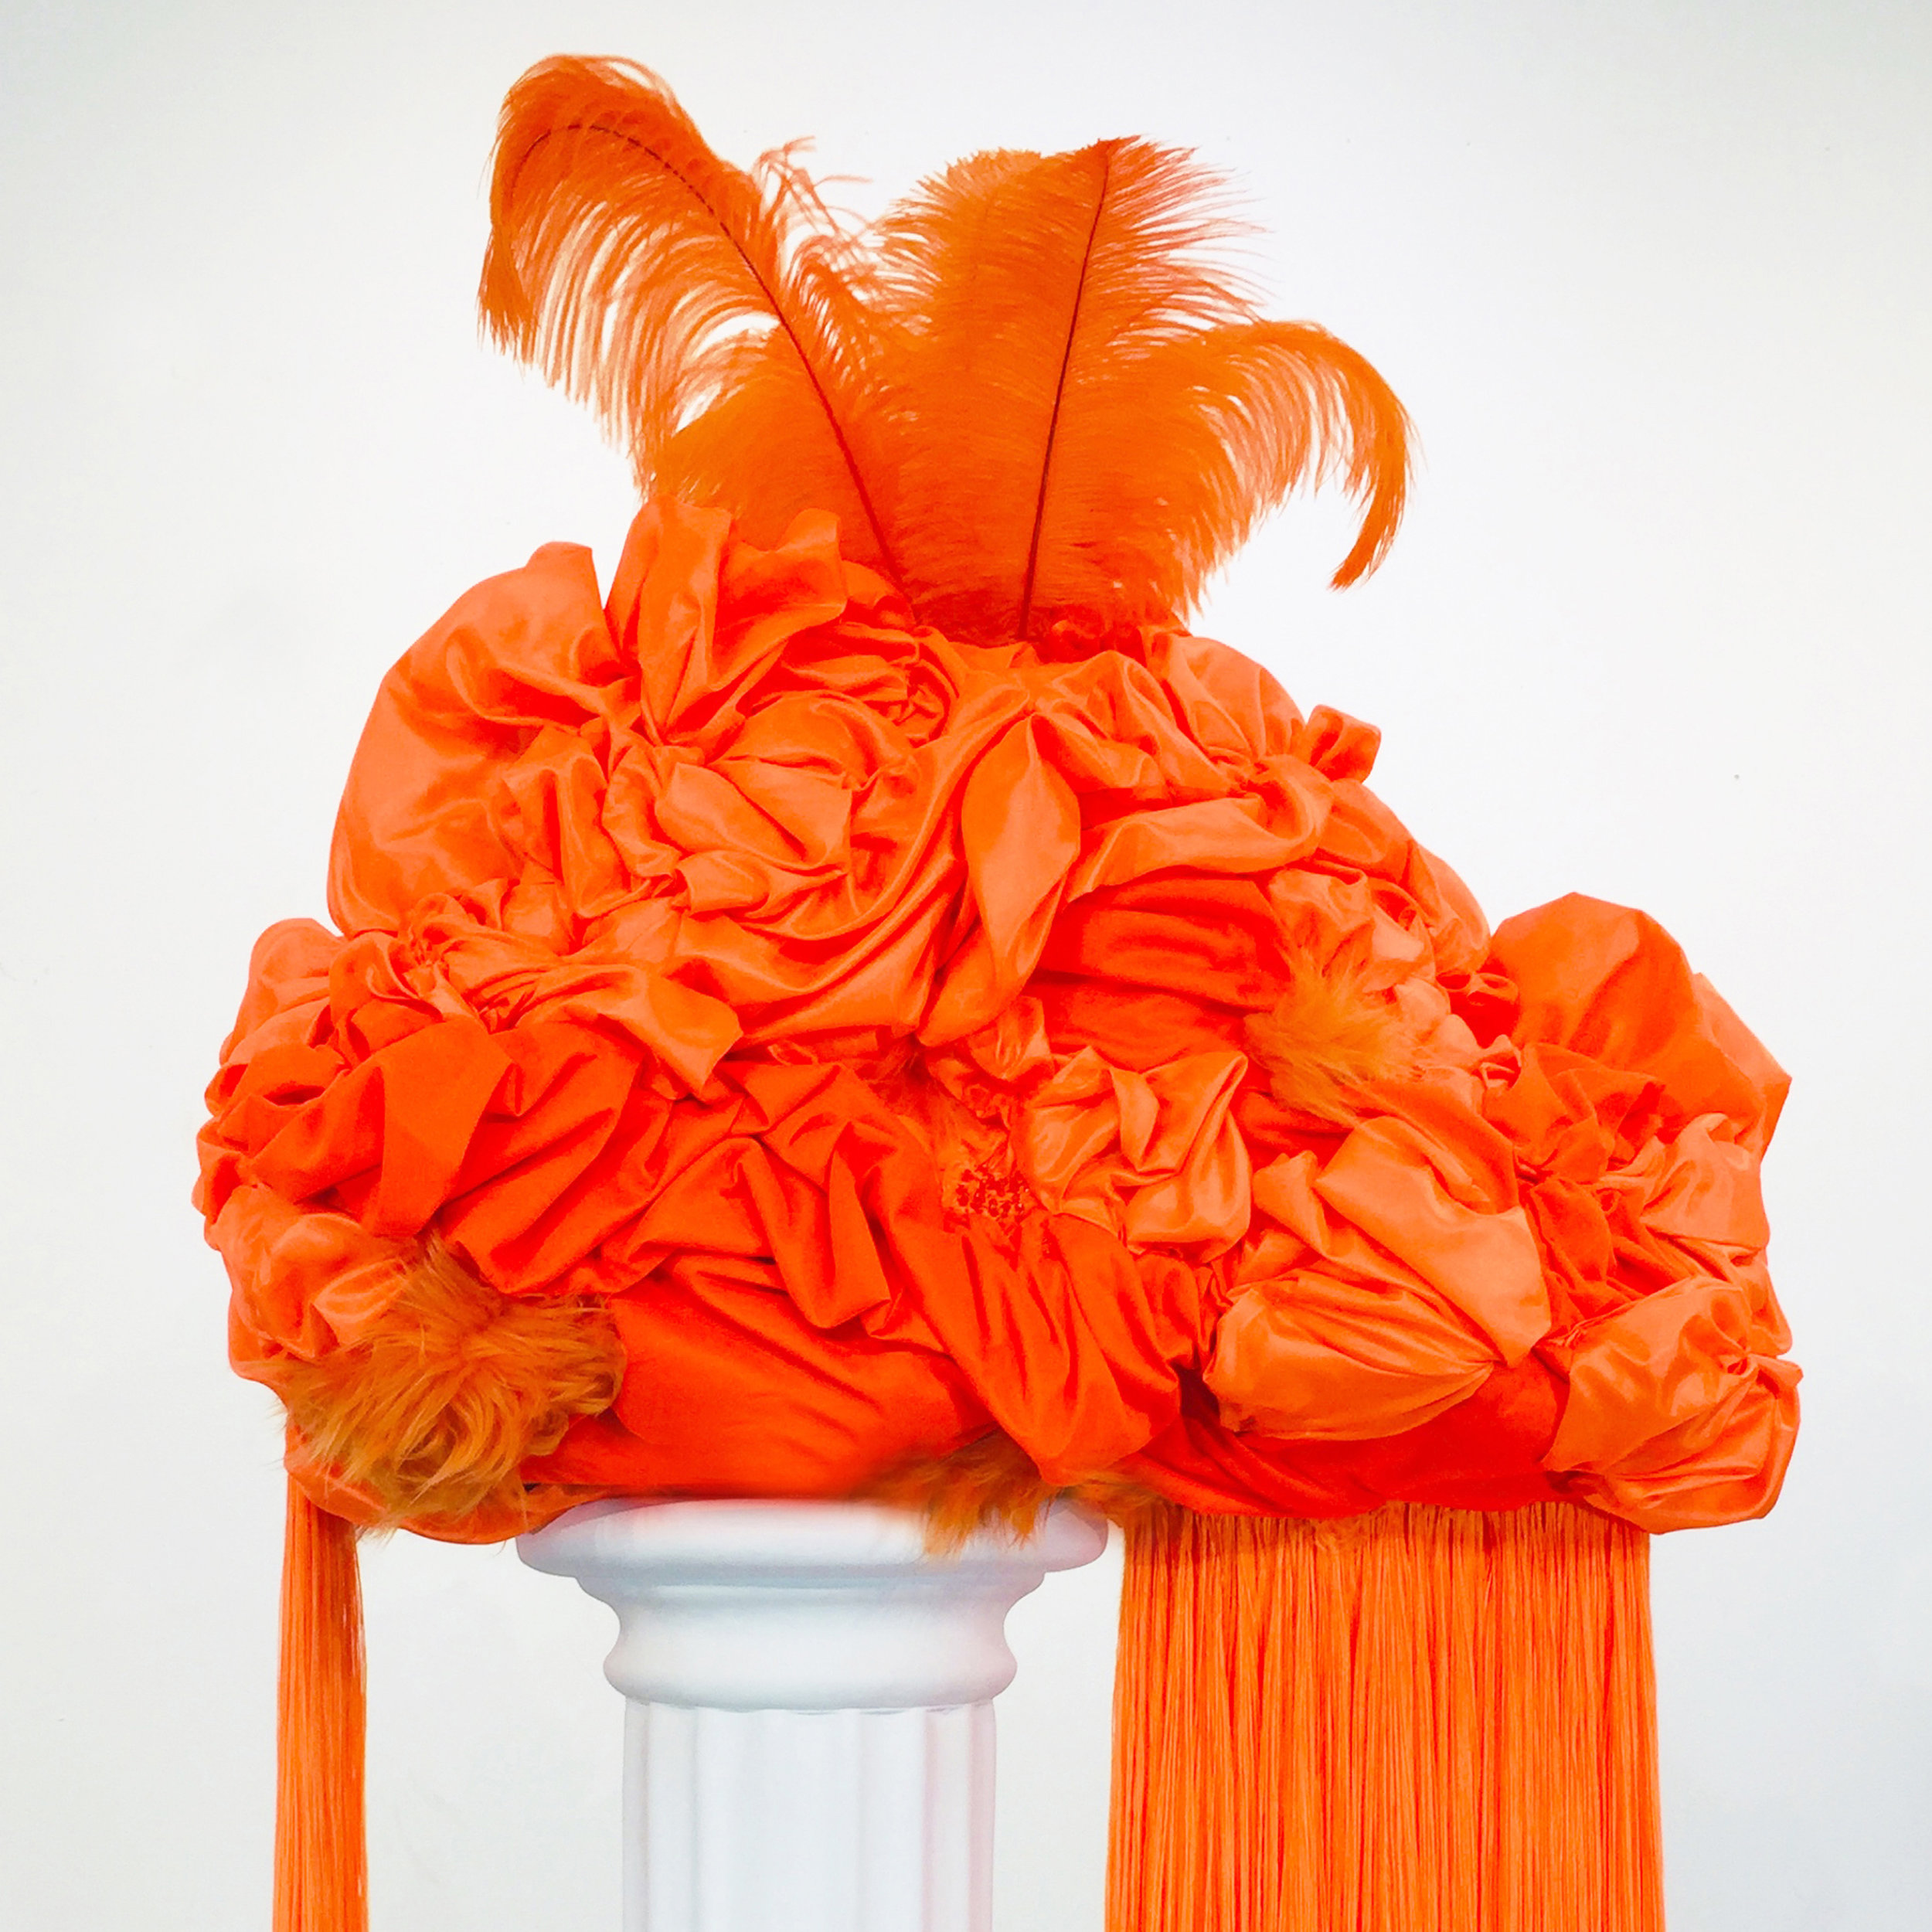 Aldonza  , (detail) 2019 Polystyrene foam, various fabrics, feathers, glass beads, and dressmaker pins 27 x 28 x 16 inches